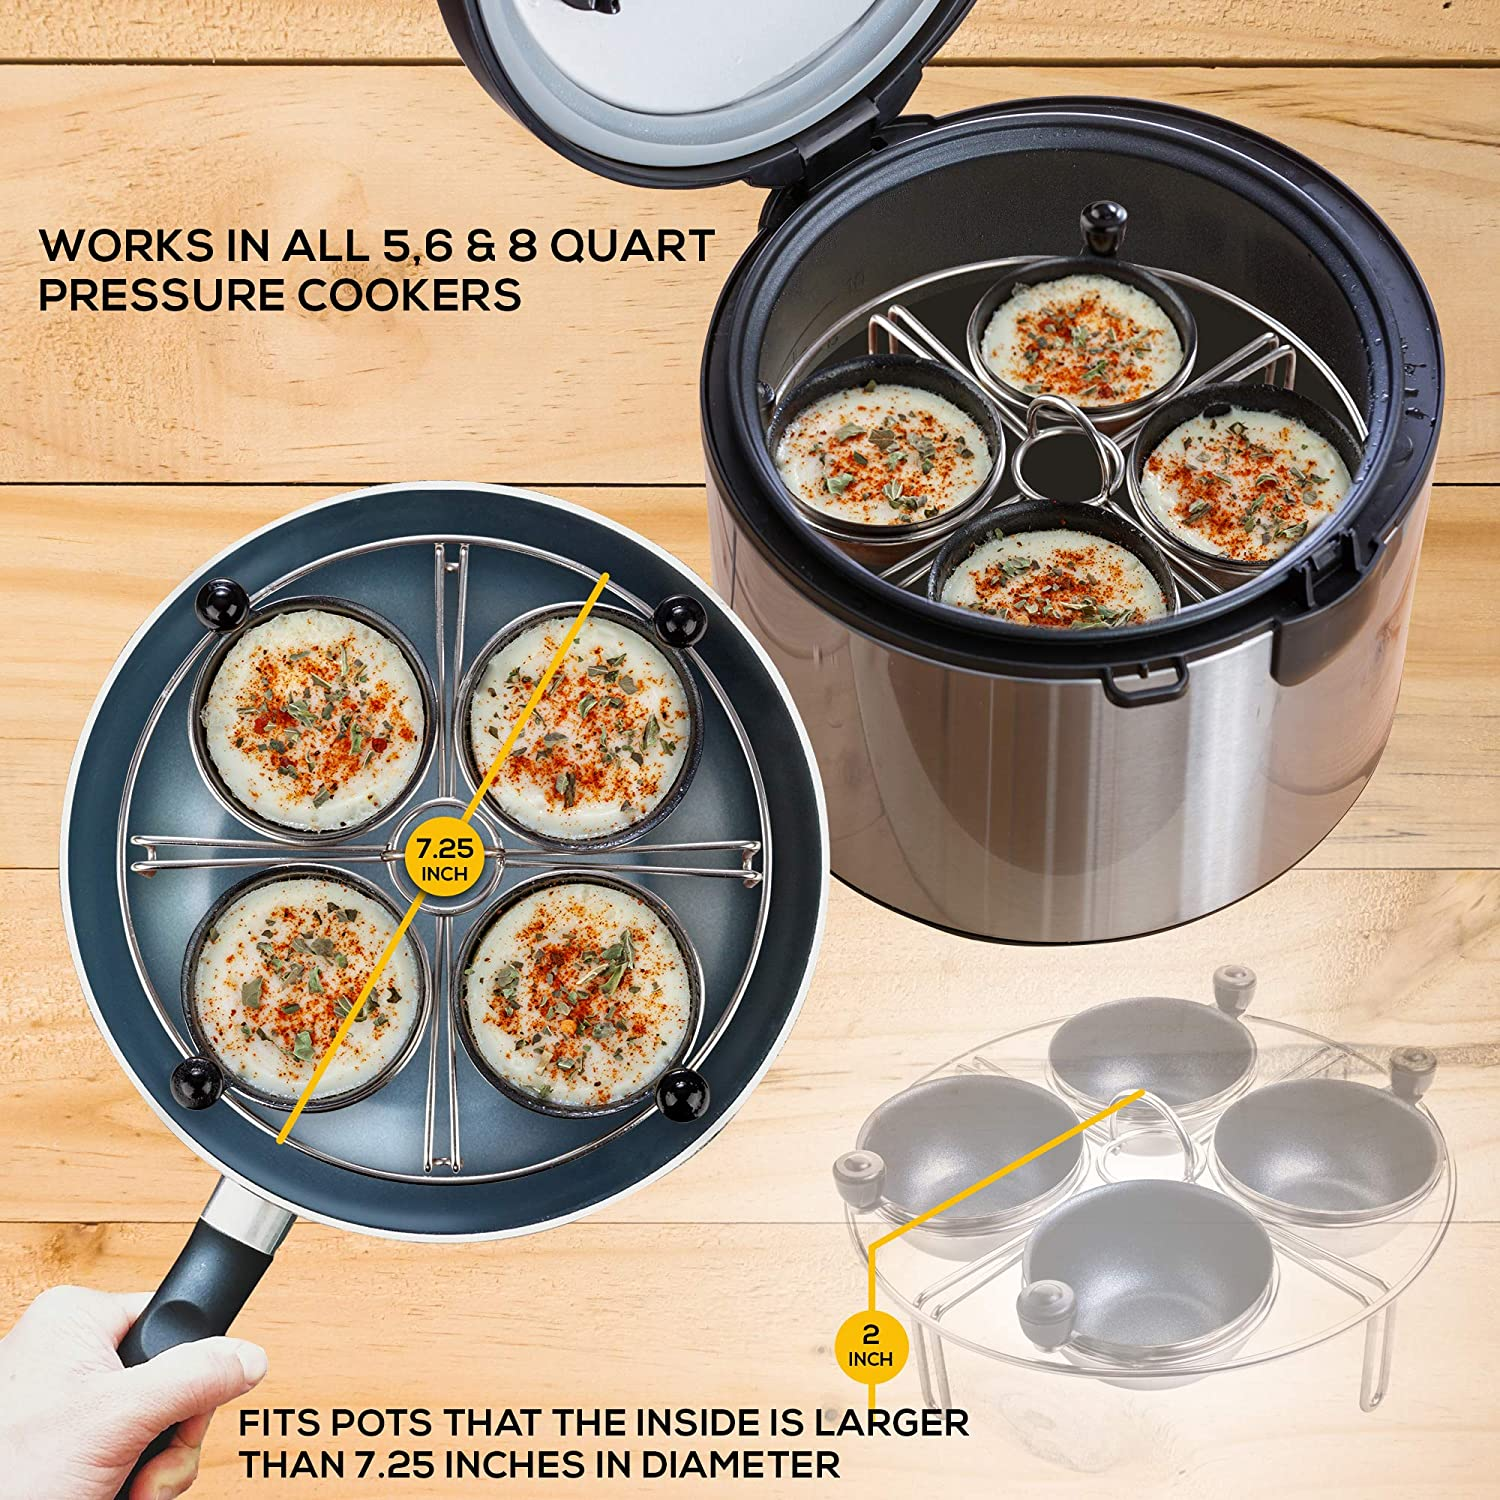 Eggssentials Egg Poacher Stainless Steel Egg Rack 6.25 inches Egg Steamer Rack Fits Many sized Pans Skillets and Pressure Cookers /… 2 Poached Egg Maker Cups PFOA Free Nonstick